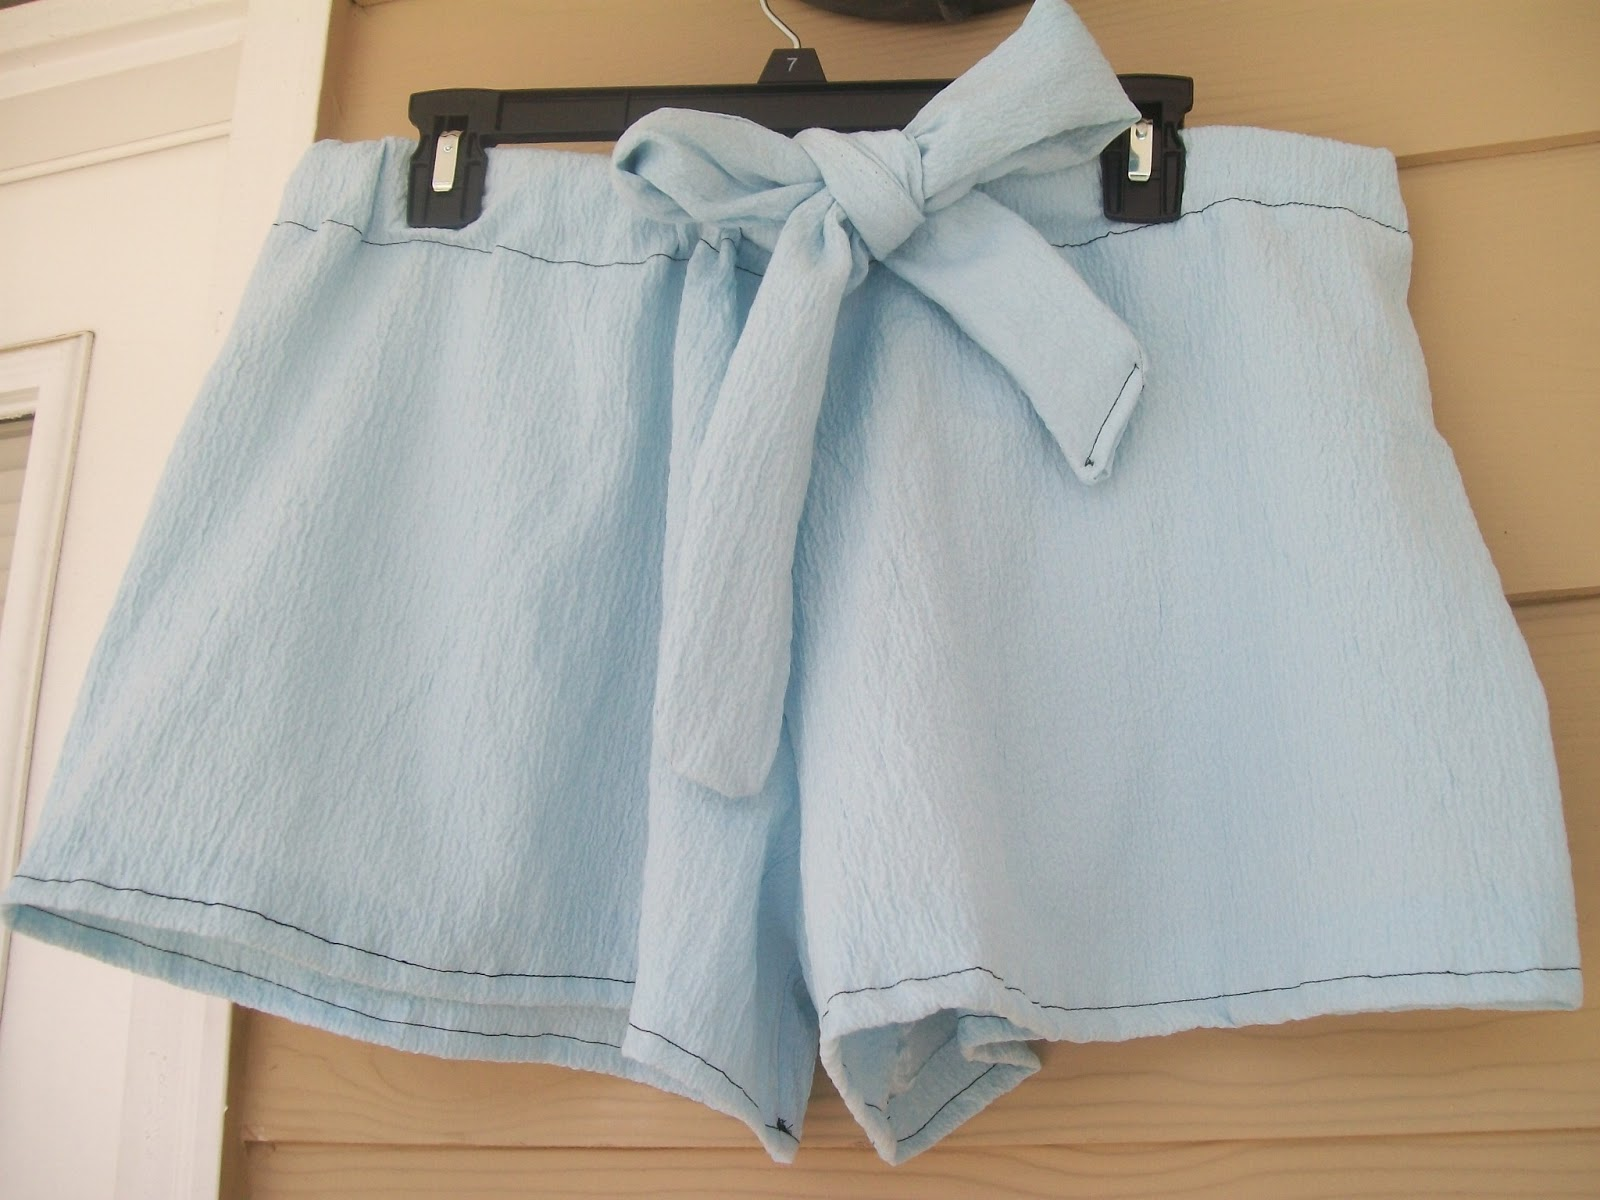 How to sew shorts 95